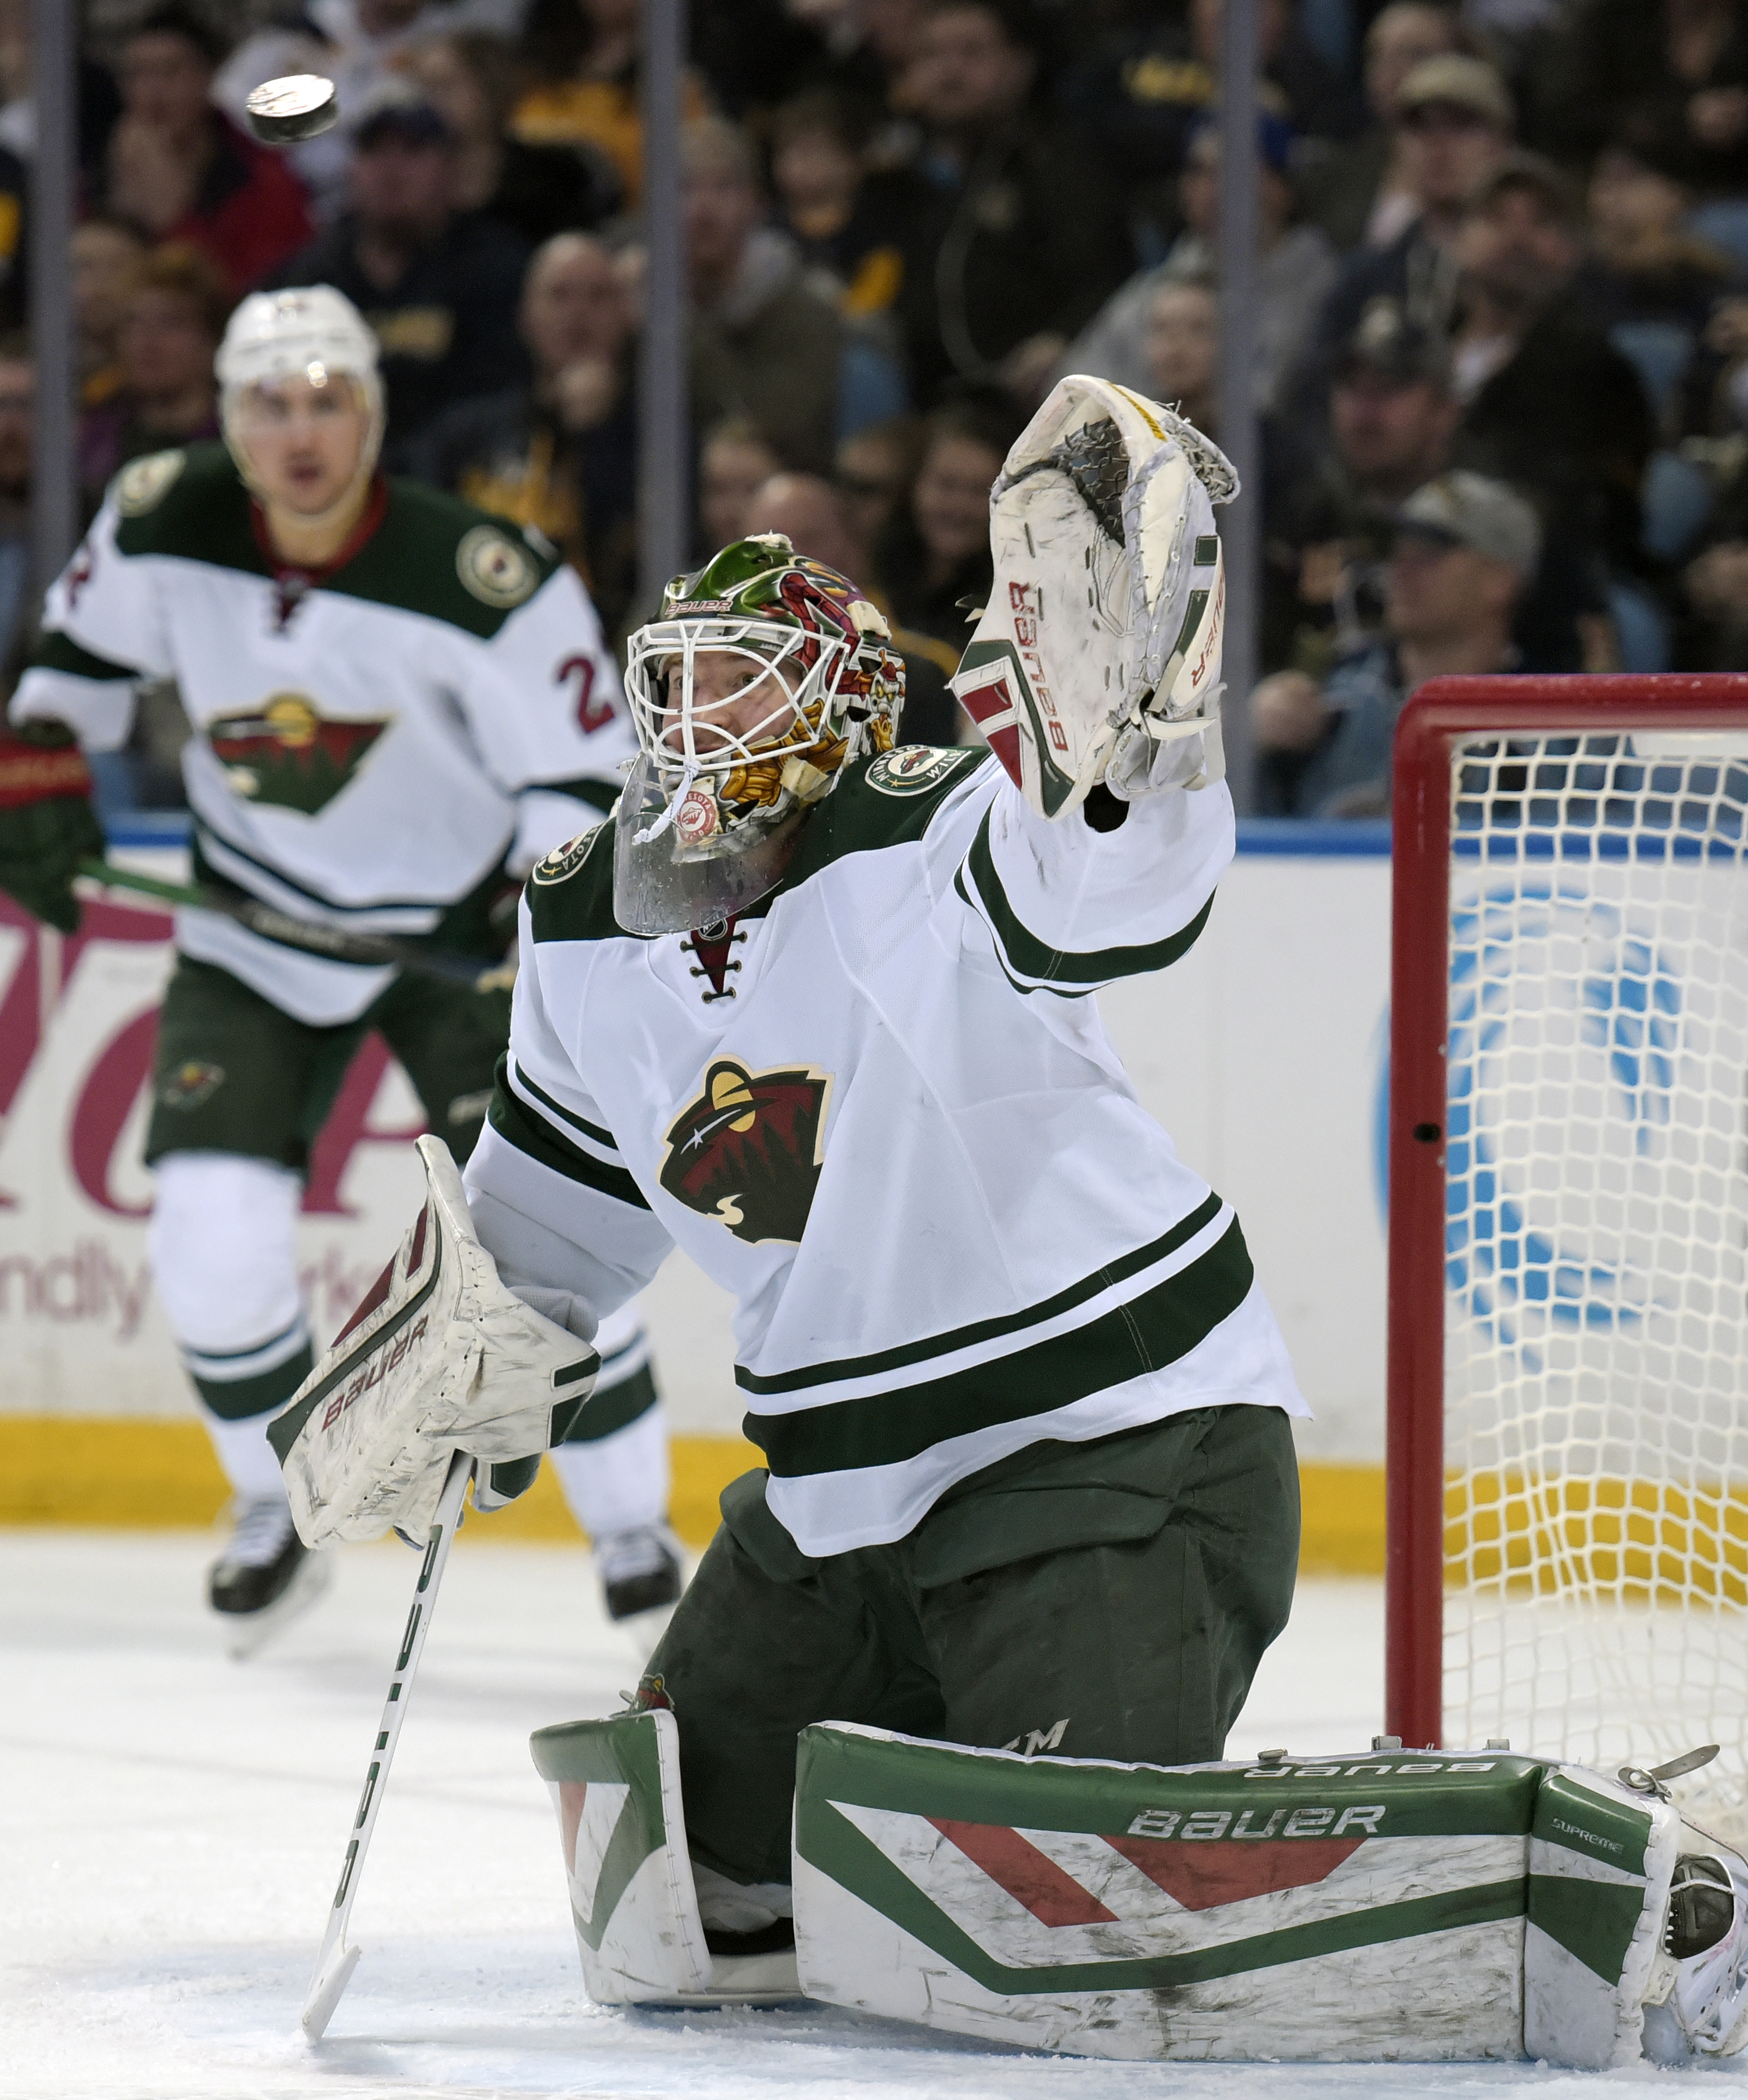 Minnesota Wild goaltender Devan Dubnyk eyes the puck during the first period of an NHL hockey game against the Buffalo Sabres, Saturday, March 5, 2016, in Buffalo, N.Y. (AP Photo/Gary Wiepert)